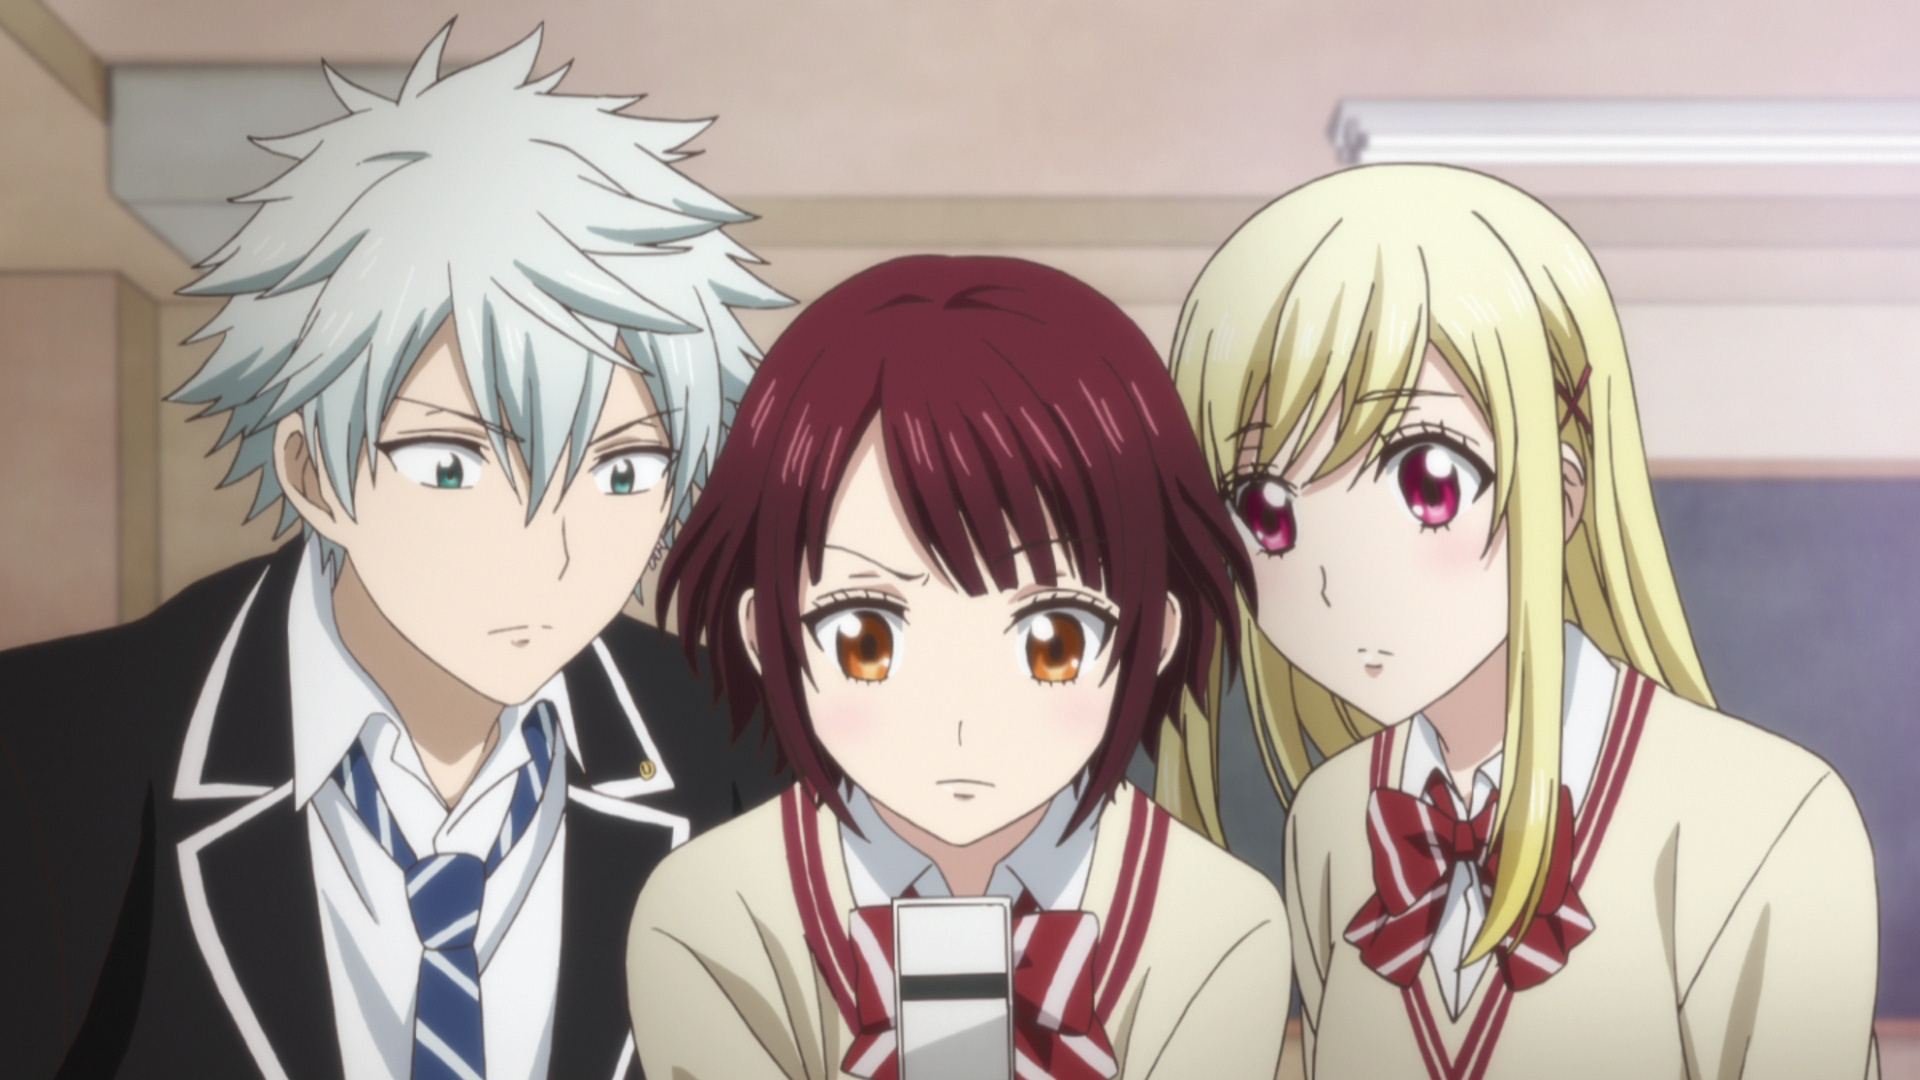 Watch Yamada Kun And The Seven Witches Season 1 Episode 2 Sub